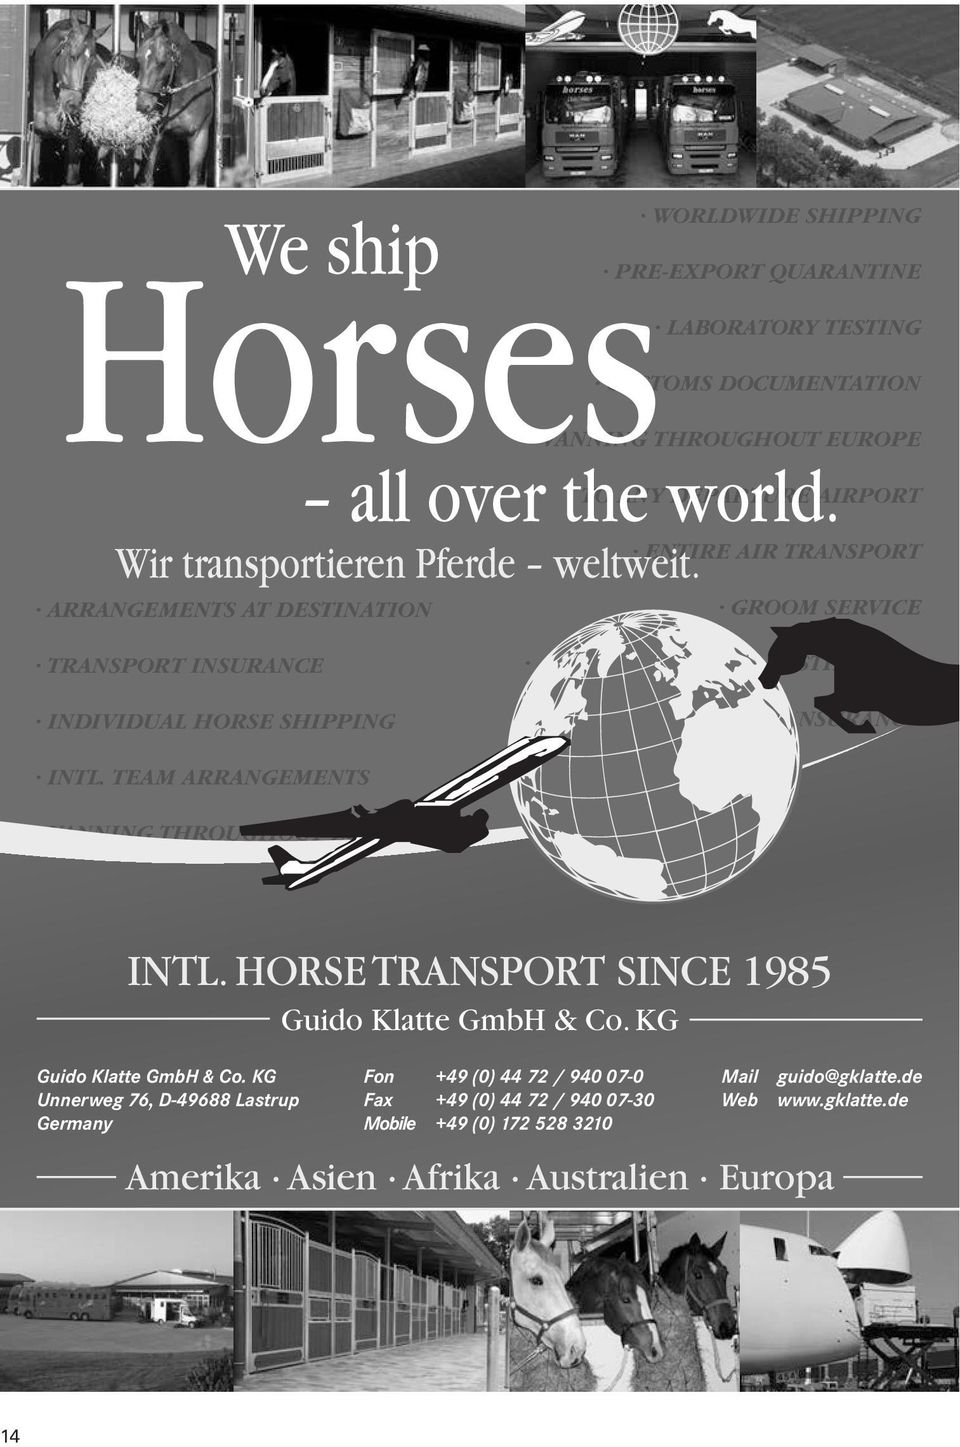 TEAM ARRANGEMENTS VANNING THROUGHOUT EUROPE ARRANGEMENTS AT DESTINATION TRANSPORT INSURANCE INDIVIDUAL HORSE SHIPPING INTL. TEAM ARRANGEMENTS TO ANY DEPARTURE AIRPORT ENTIRE AIR TRANSPORT INTL.